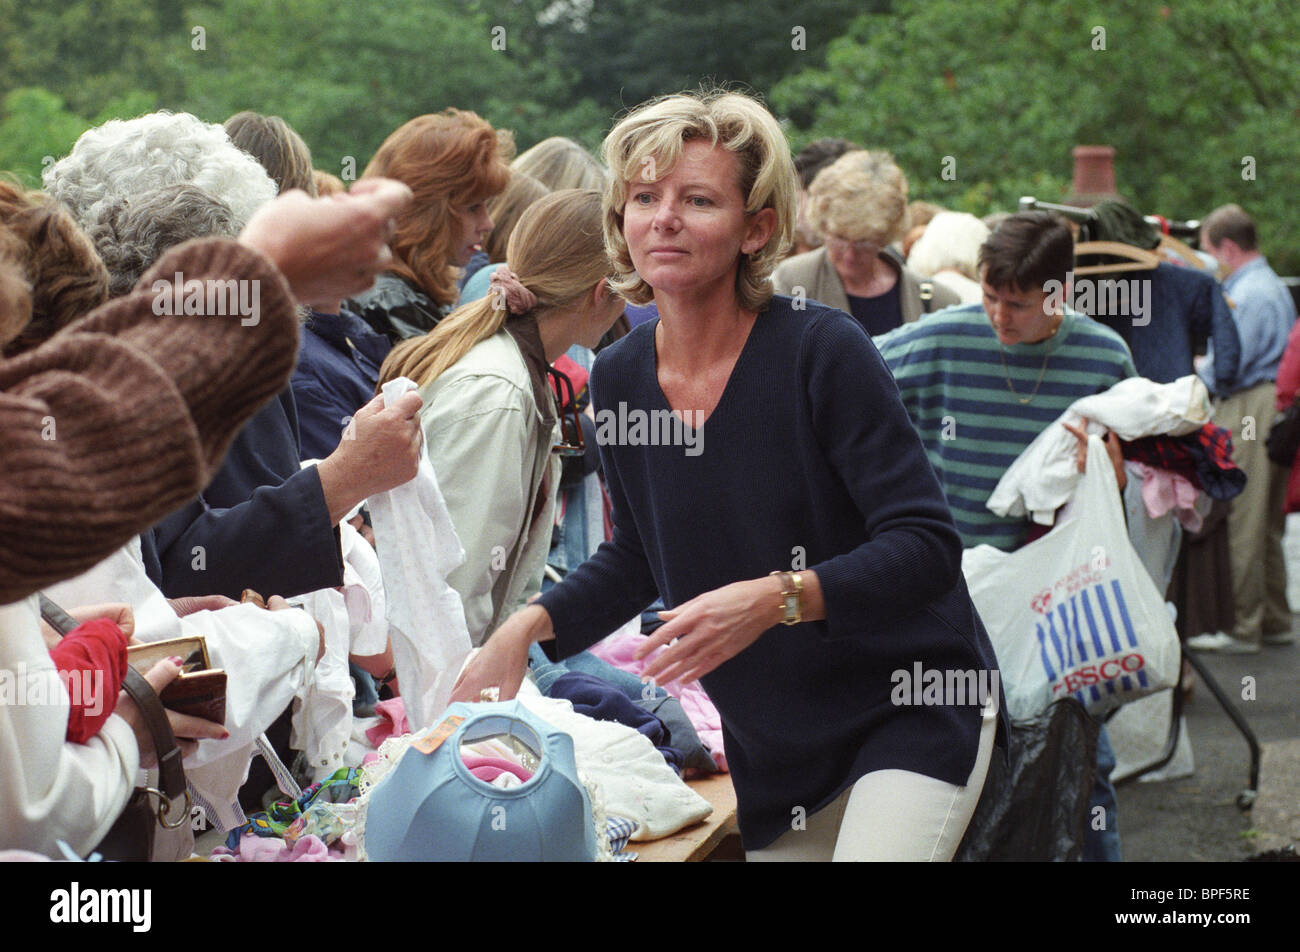 Lady Bradford formerly Joanne Elizabeth Miller at a car boot sale at Weston Park, Shropshire in 1996. - Stock Image